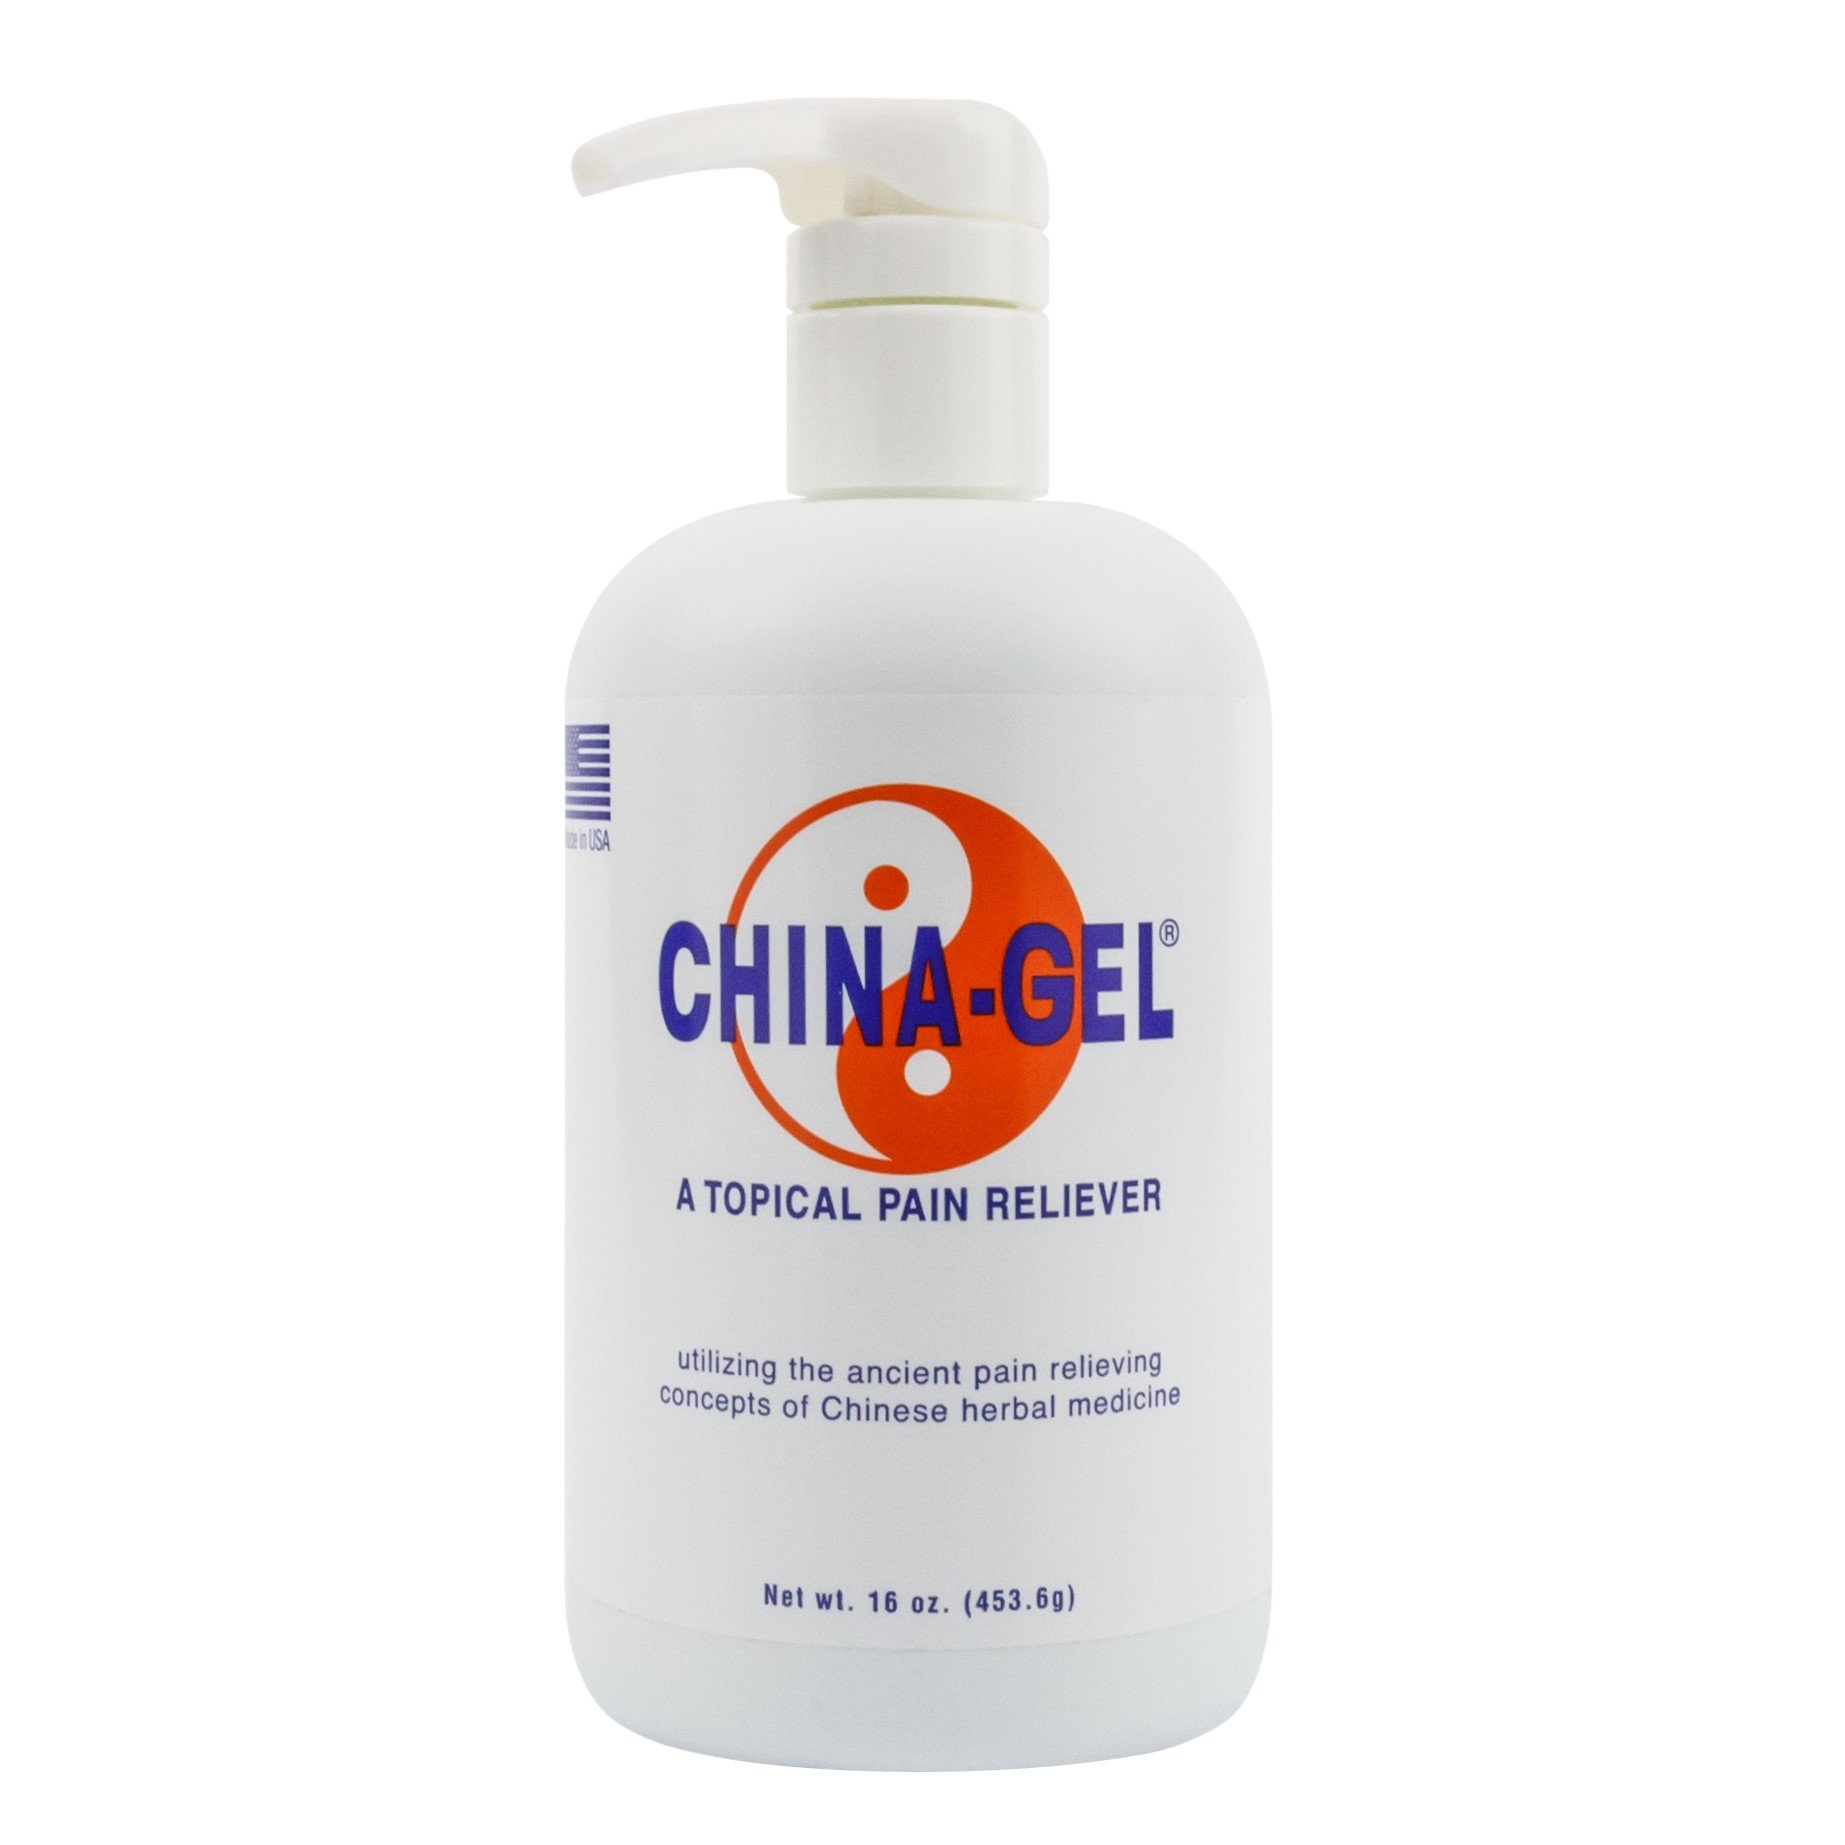 China-Gel - Topical Pain Reliever, 16 oz.